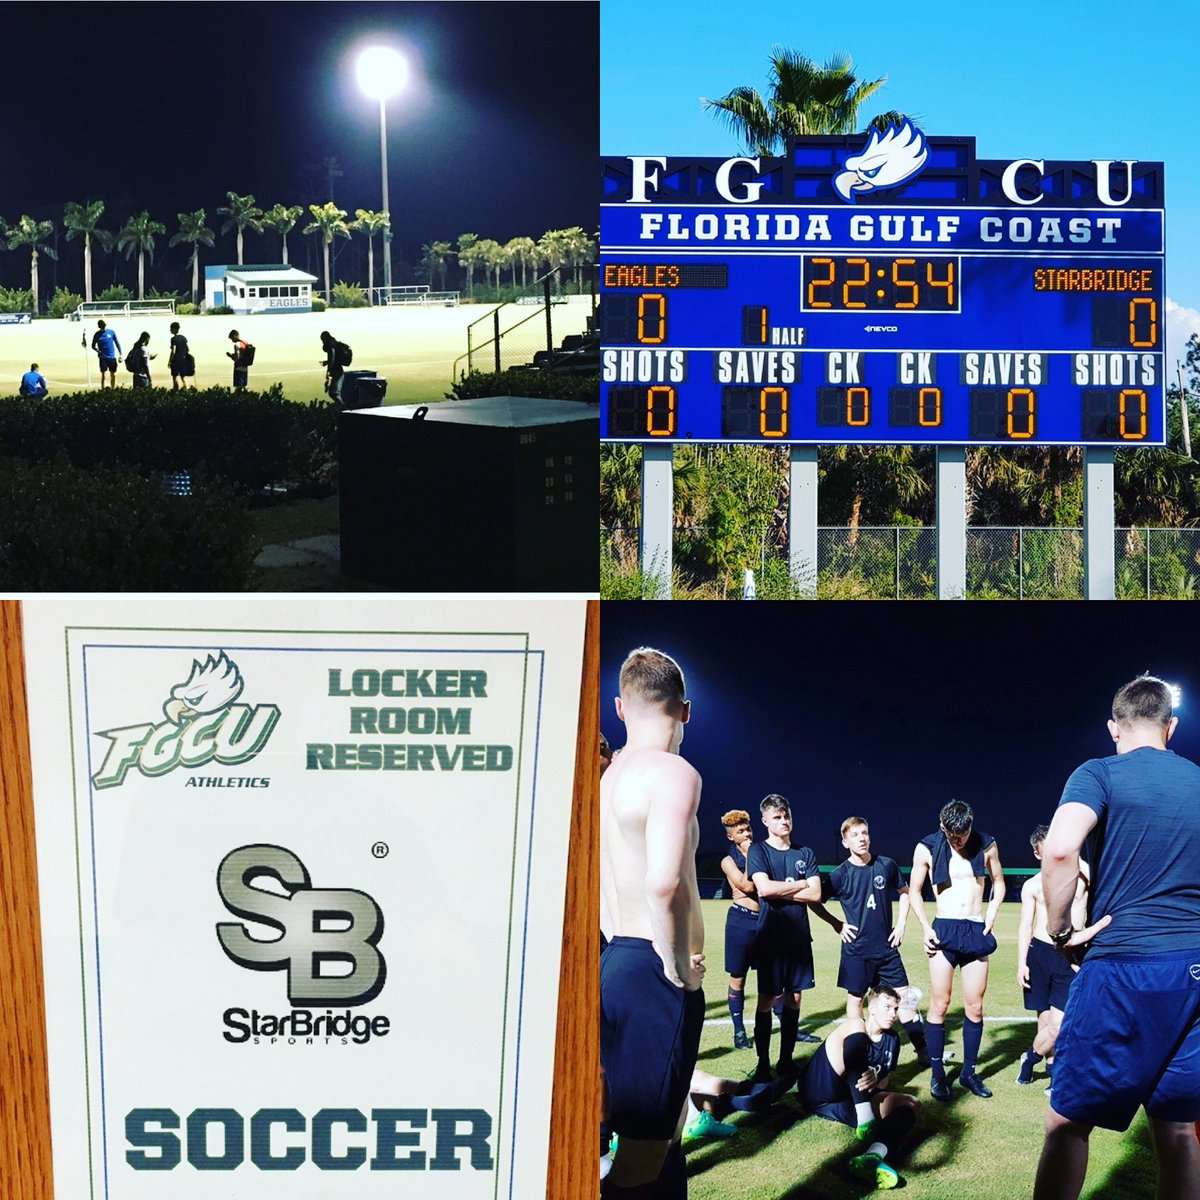 Throw back to our visit and fixtures at Florida Gulf Coast University & Oshun Lewis's wonder strike! Contact us for more information on our October 20 and April 21 USA tours #scholarship #scholarathlete #collegesoccer #studentathlete #usatours @Tull1908 @Jim_Hepworthpic.twitter.com/OFjuEdXA6y